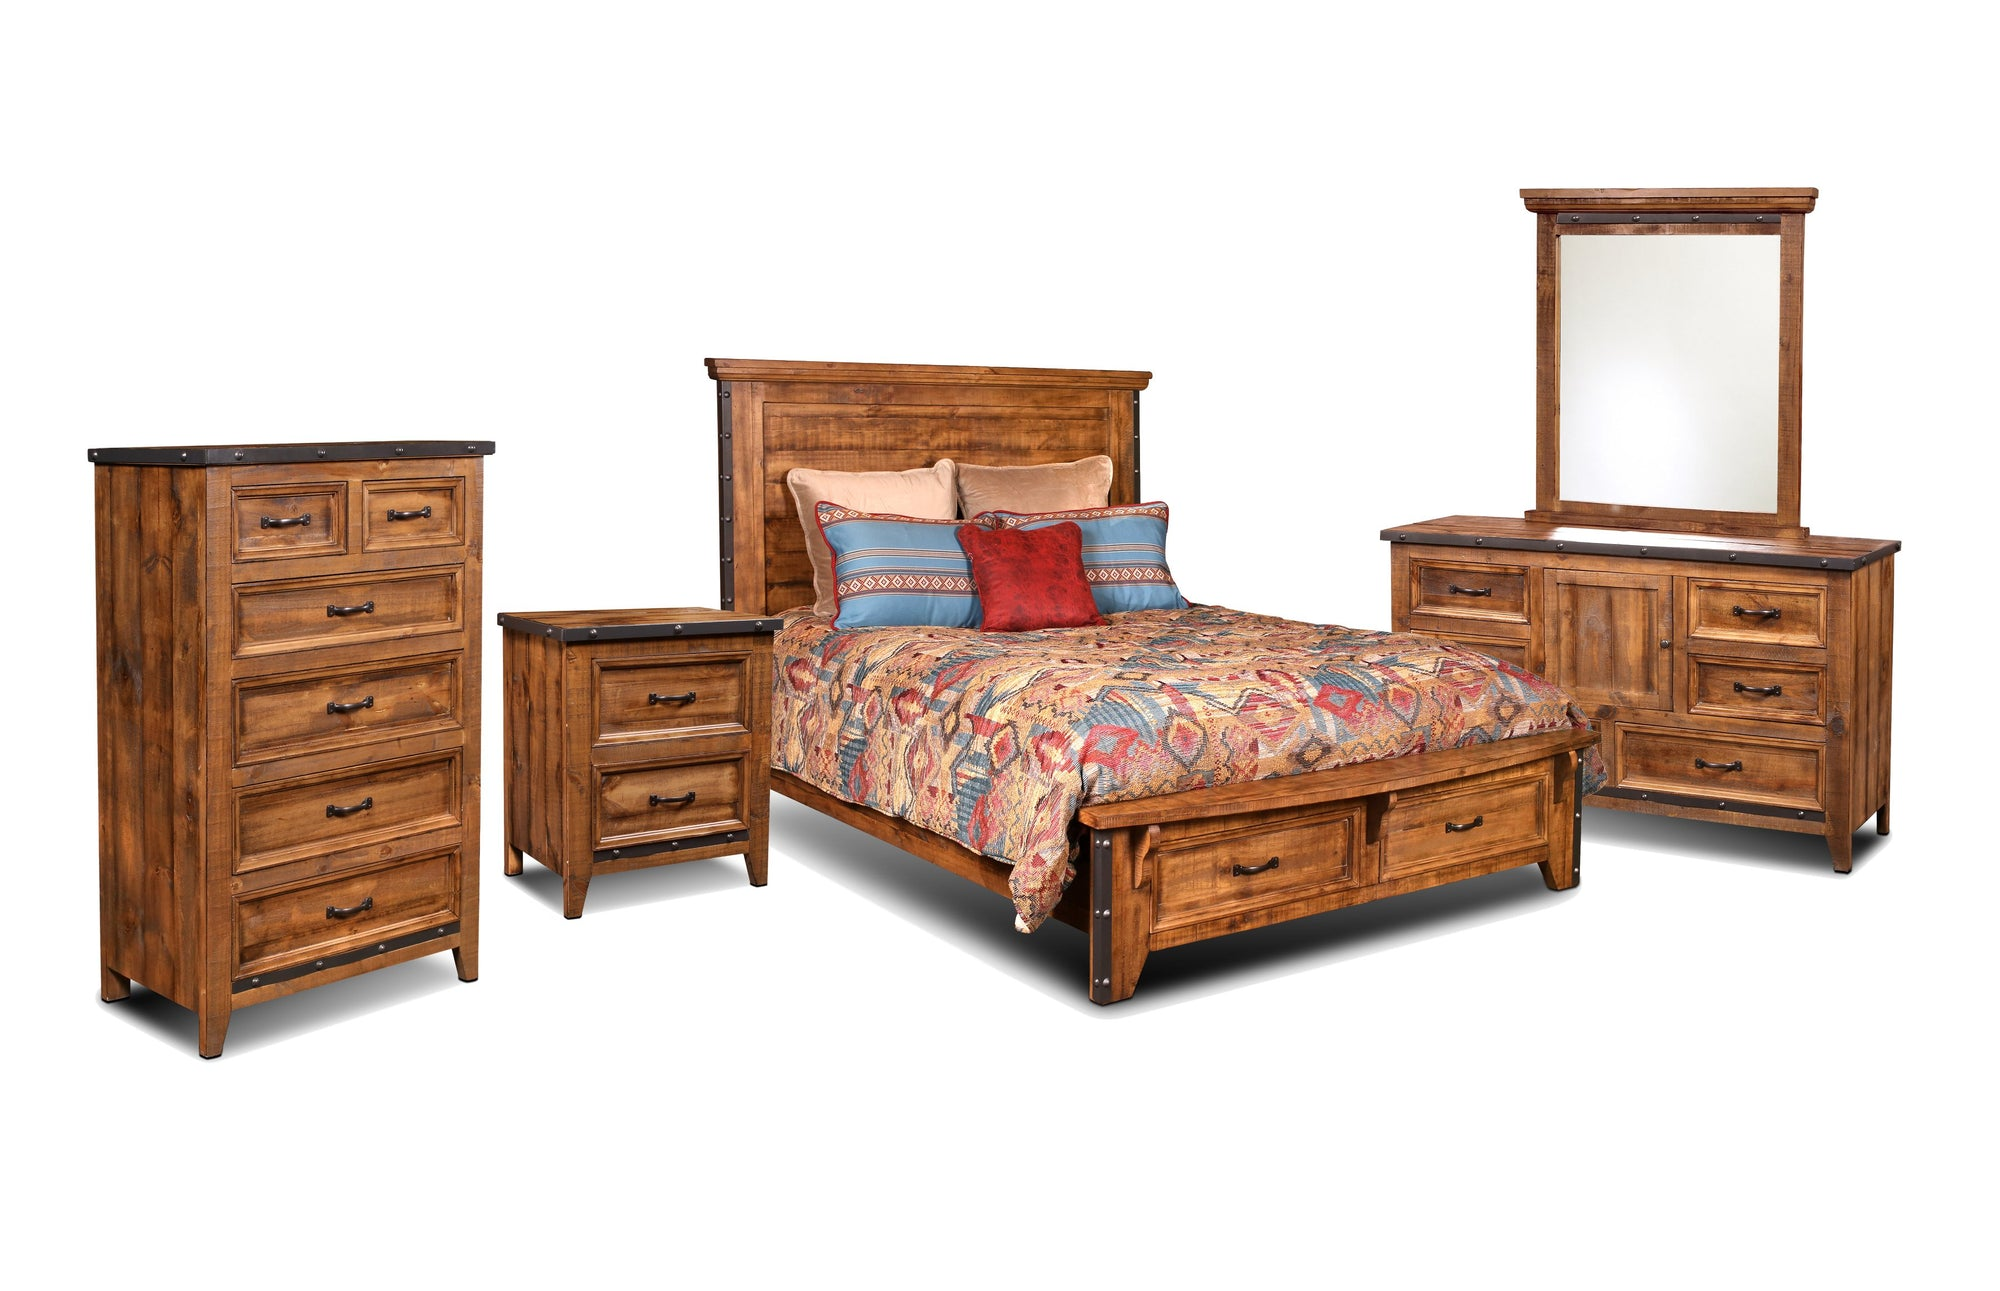 Sunset Trading Rustic City 5 Piece Queen Bedroom Set by Sunset Trading - HomeKingz.com - Online furniture shop with the best prices & premium customer support!